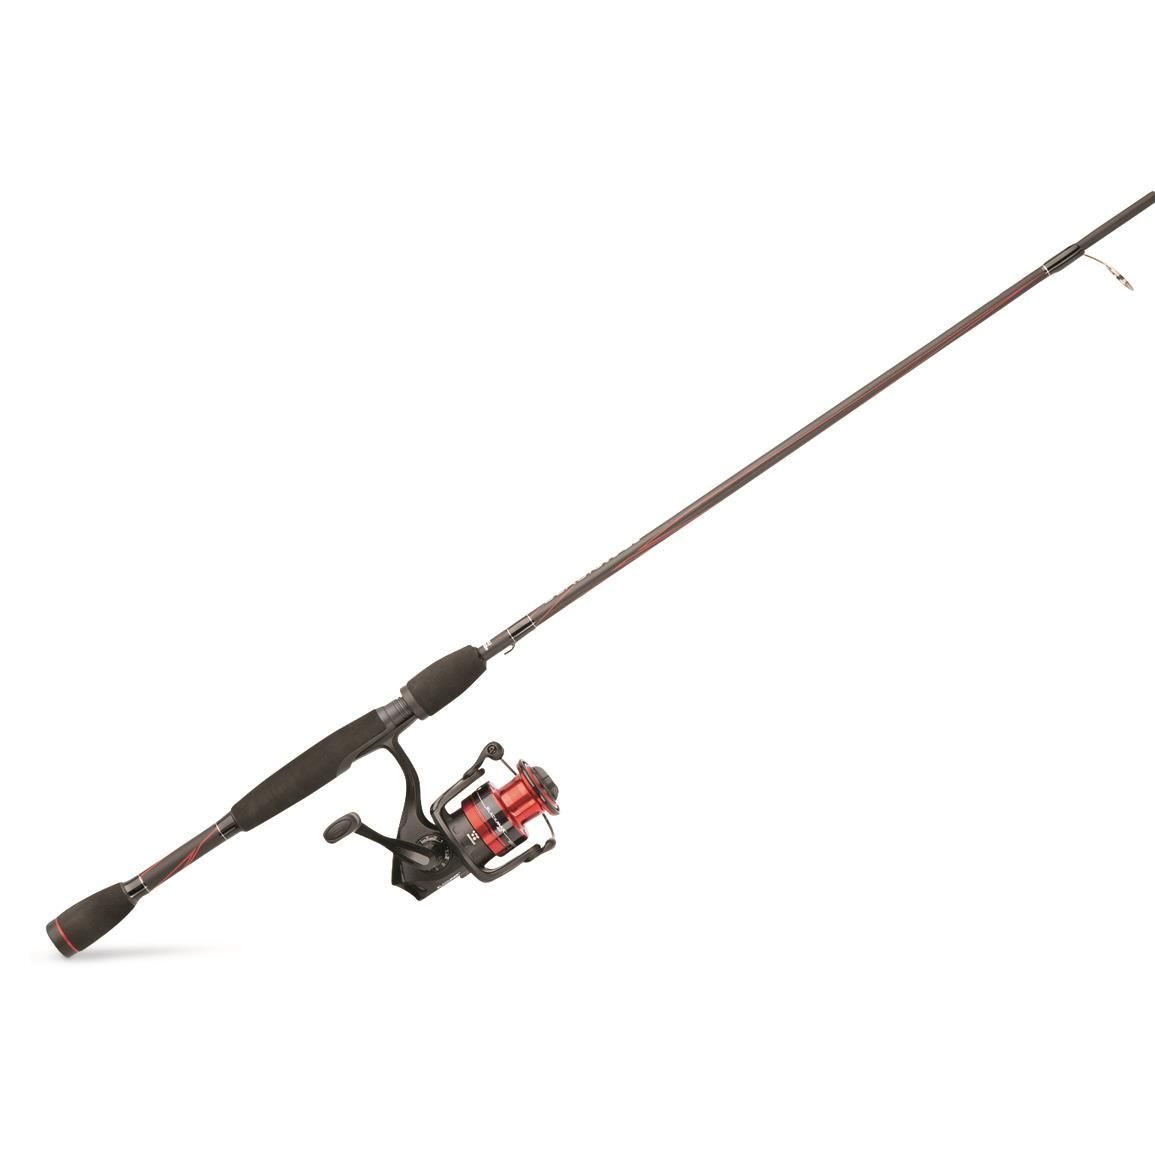 Abu Garcia Black Max Spinning Rod and Reel Combo